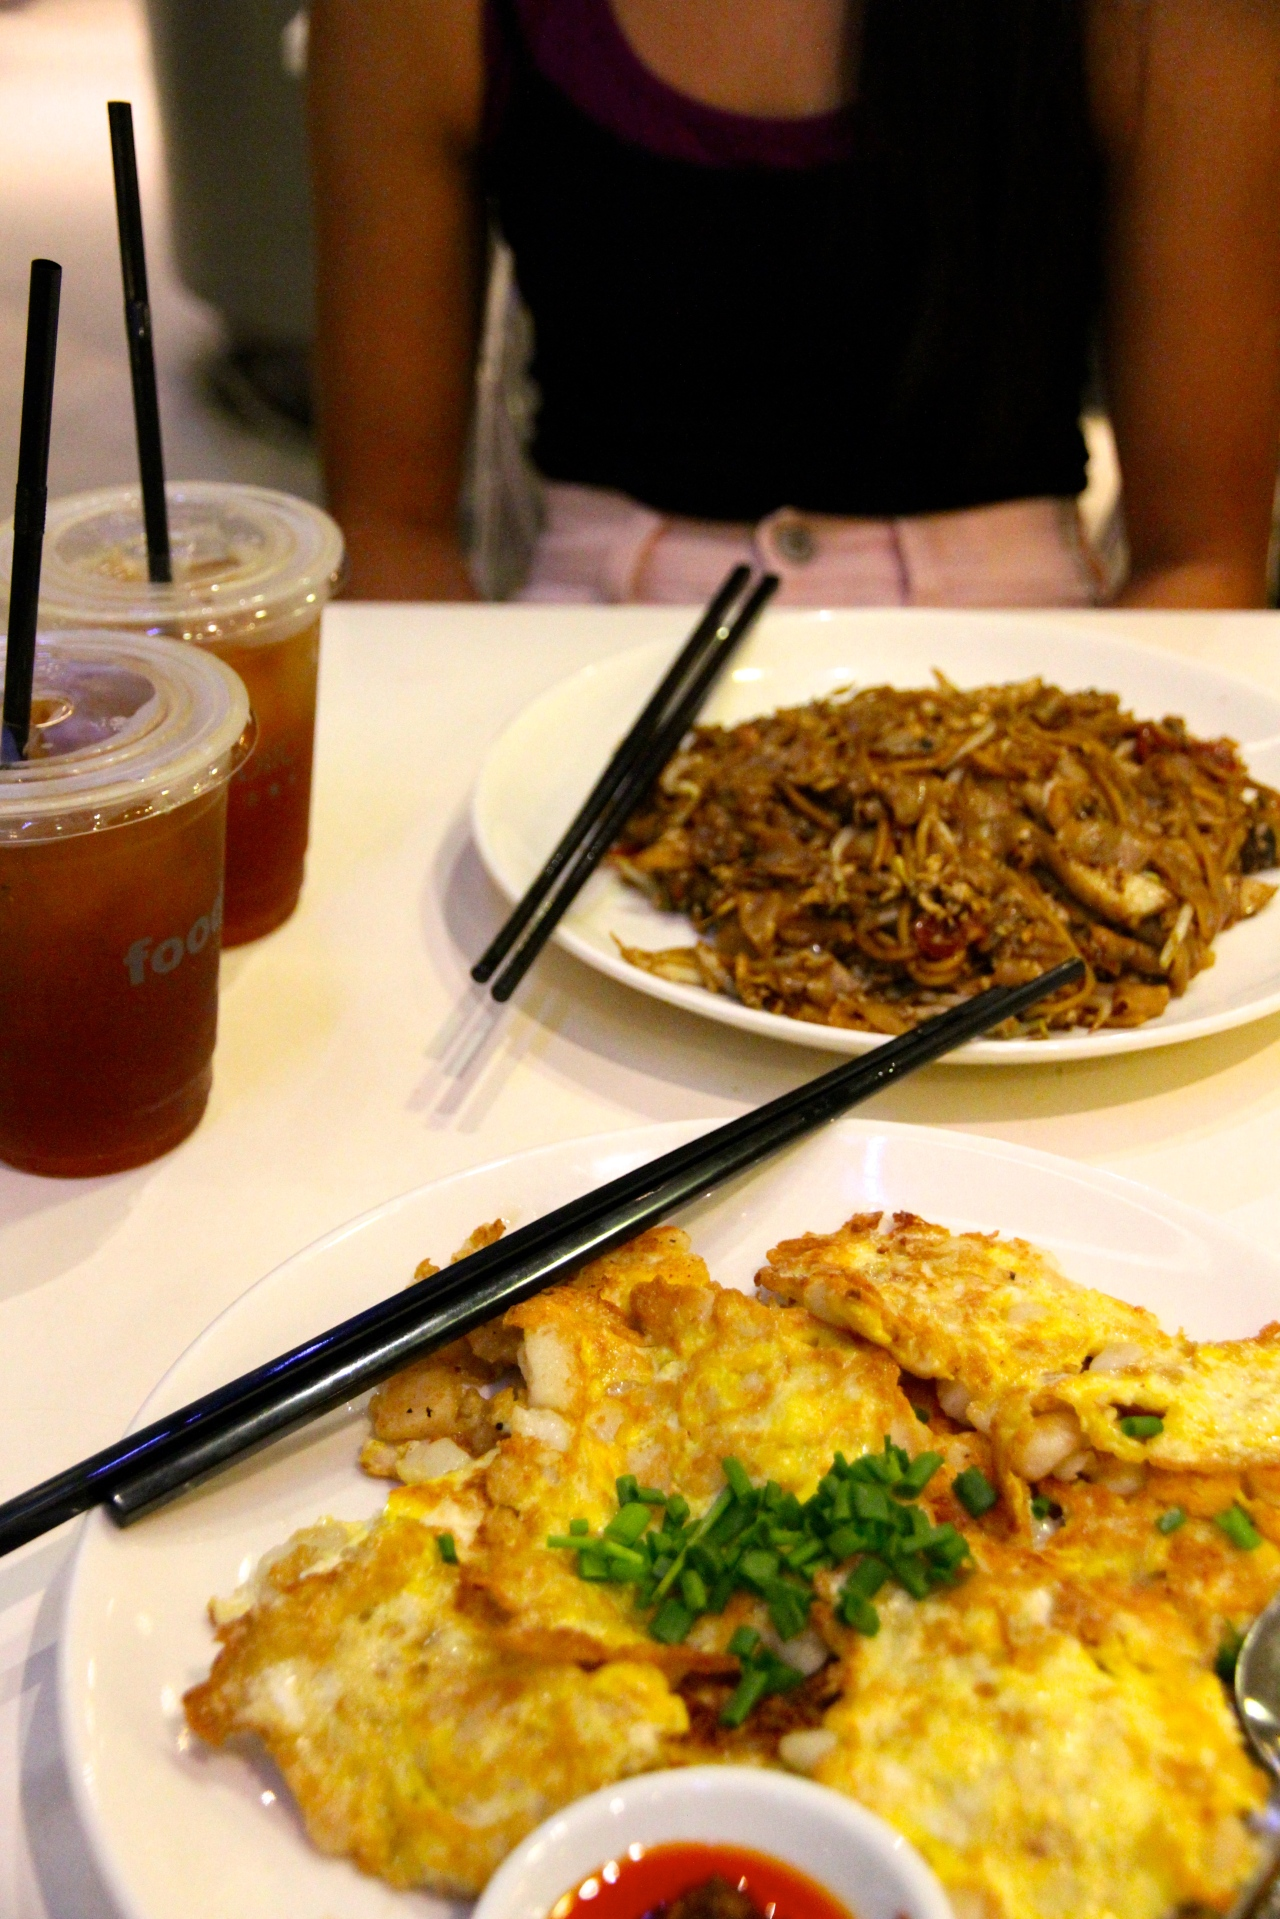 Fried carrot cake in the foreground and Char Kway Teow in the background